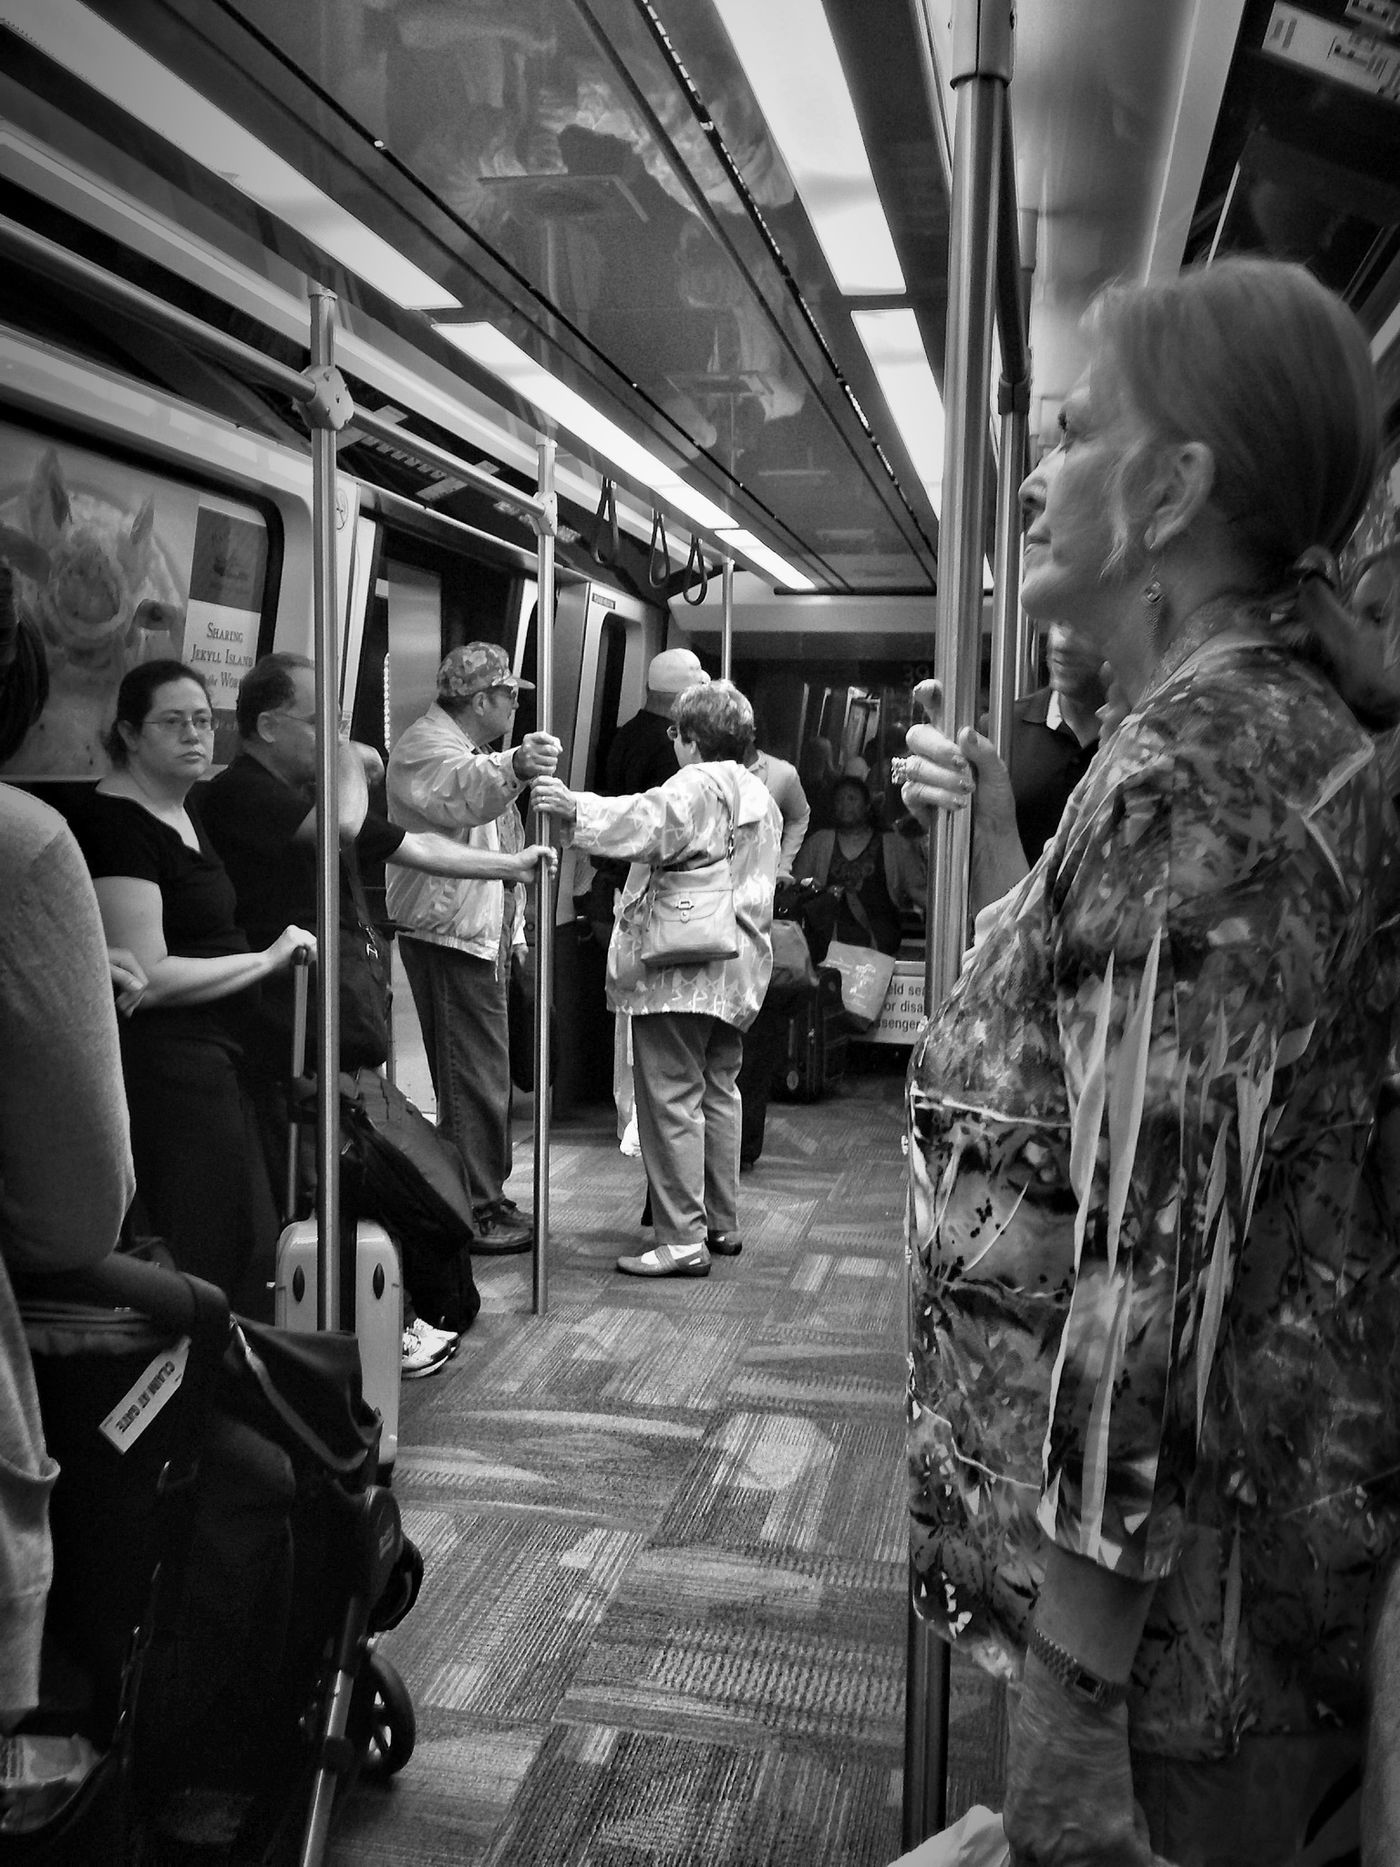 Hdr_Collection Blackandwhite Bw_collection On The Tram